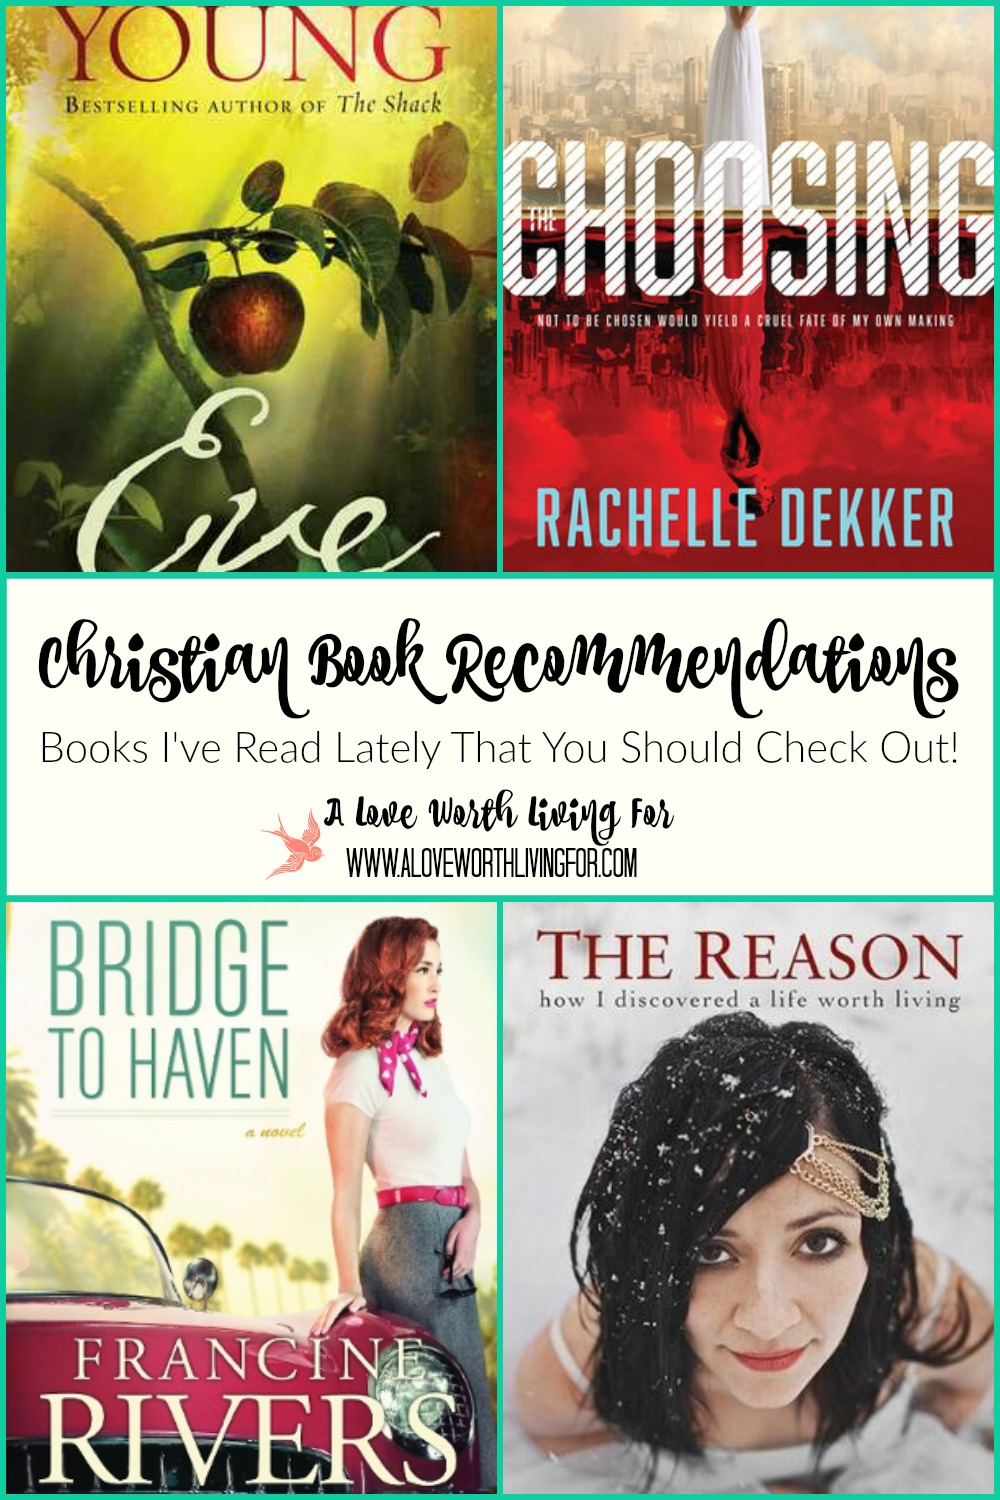 Here is a list of some great and newer Christian books that I have read lately & think you'll love! Christian Book Recommendations!